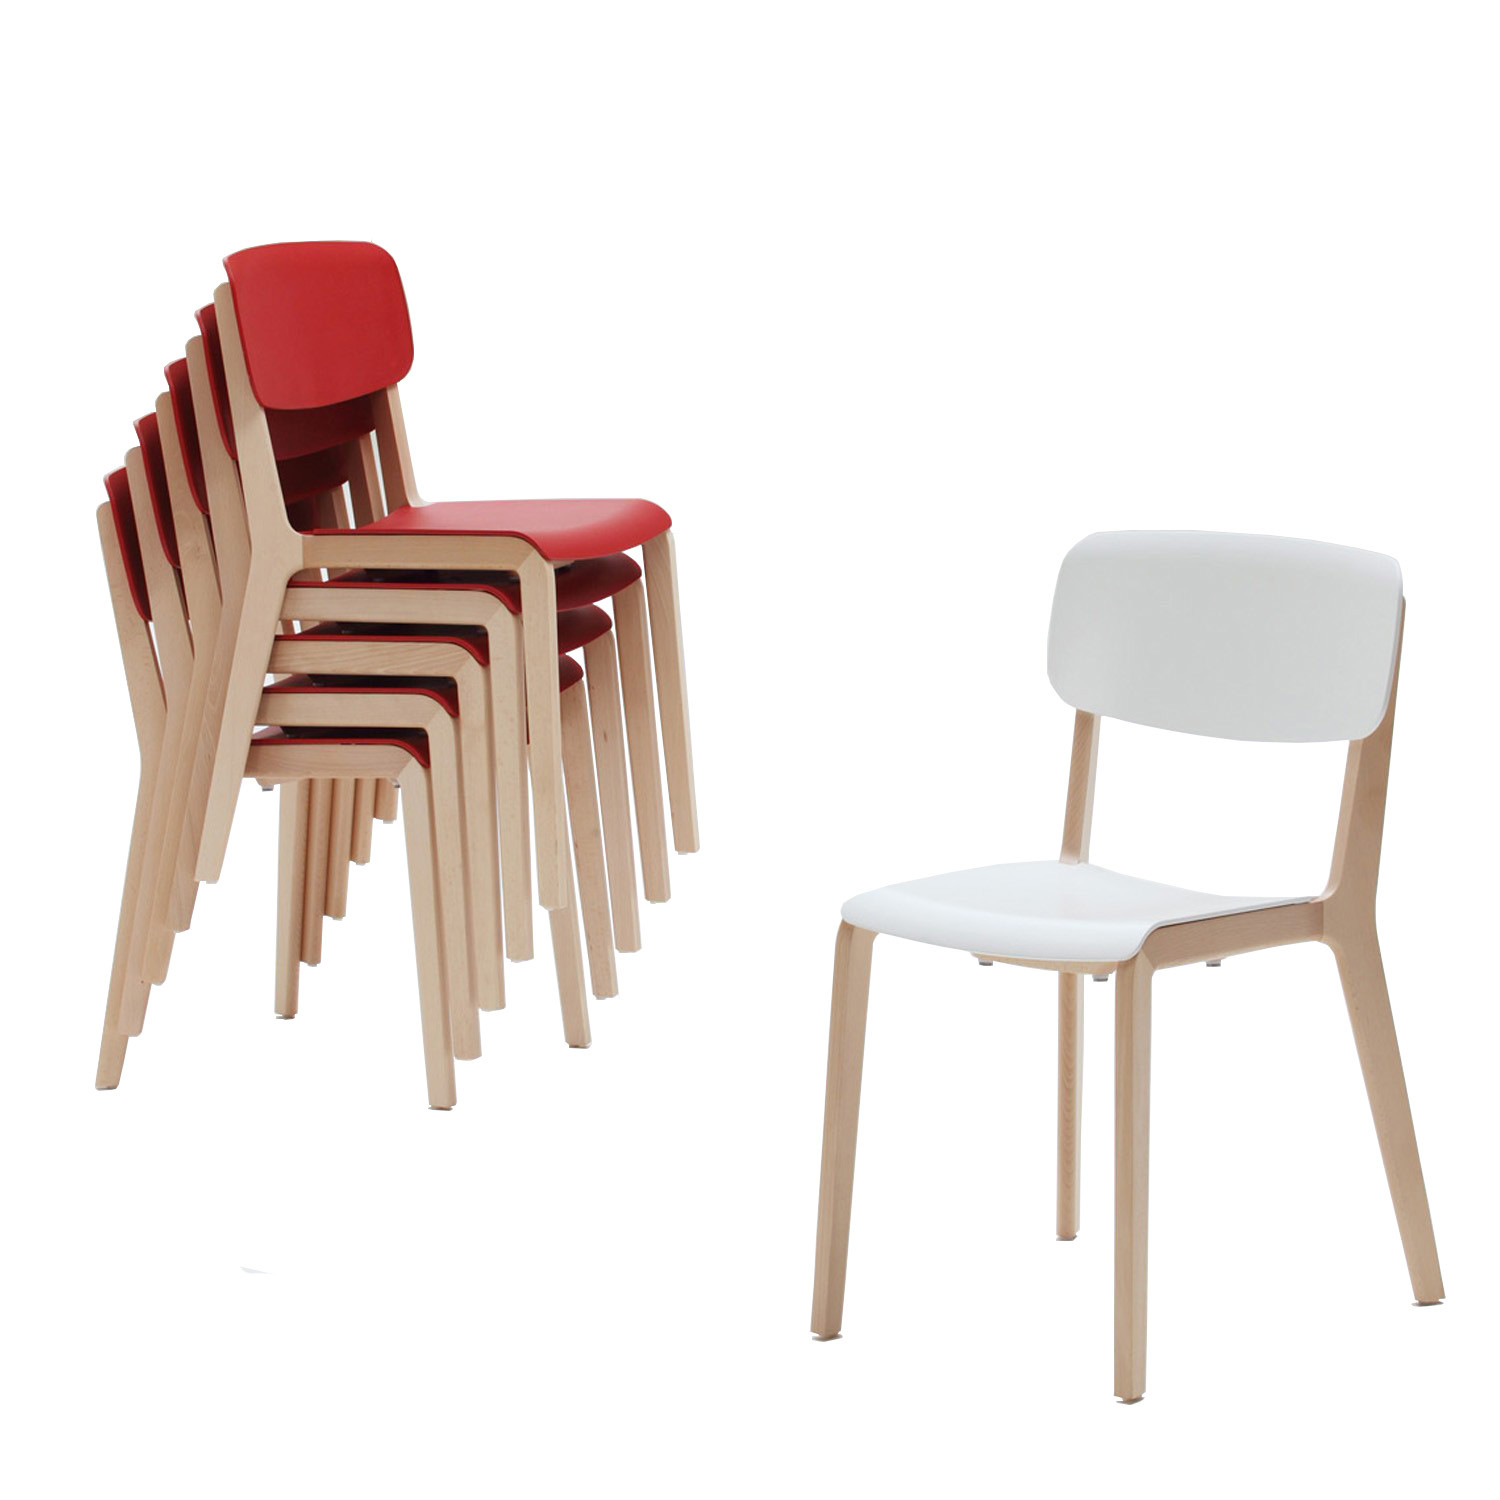 Chorus Jonty Stacking Chairs